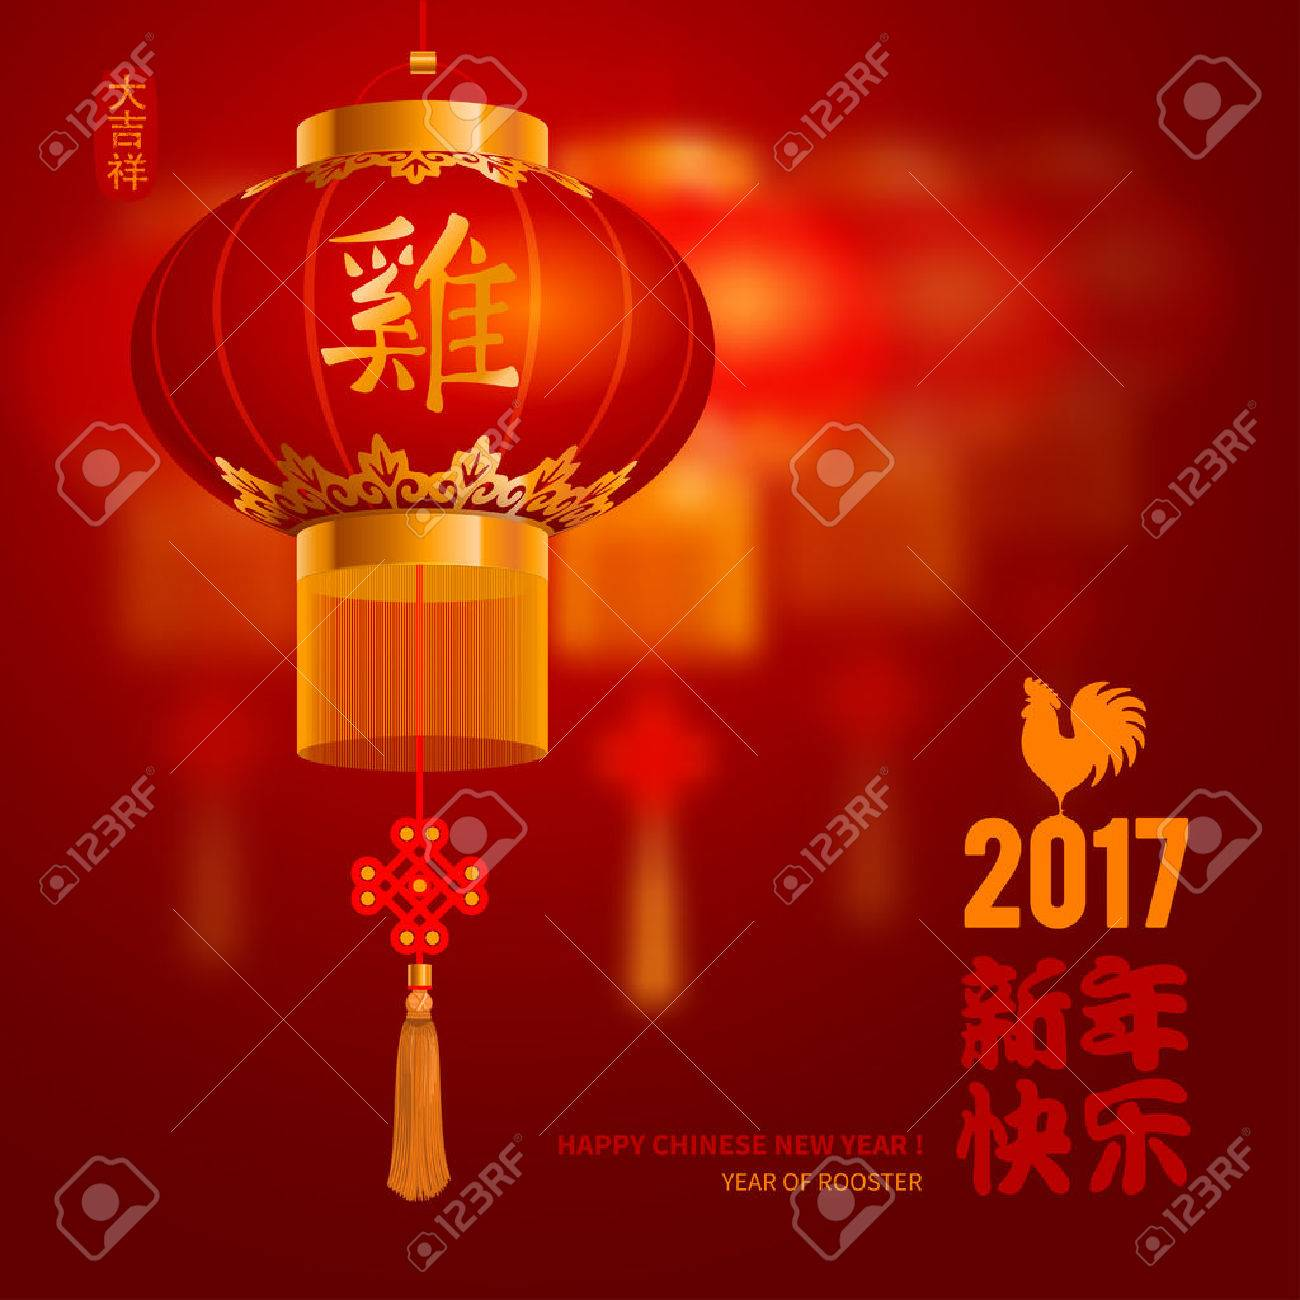 Chinese New Year festive vector card Design with blurred background (Chinese Translation: Happy Chinese New Year, on stamp : wishes of good luck, on lamp : rooster). - 63163845